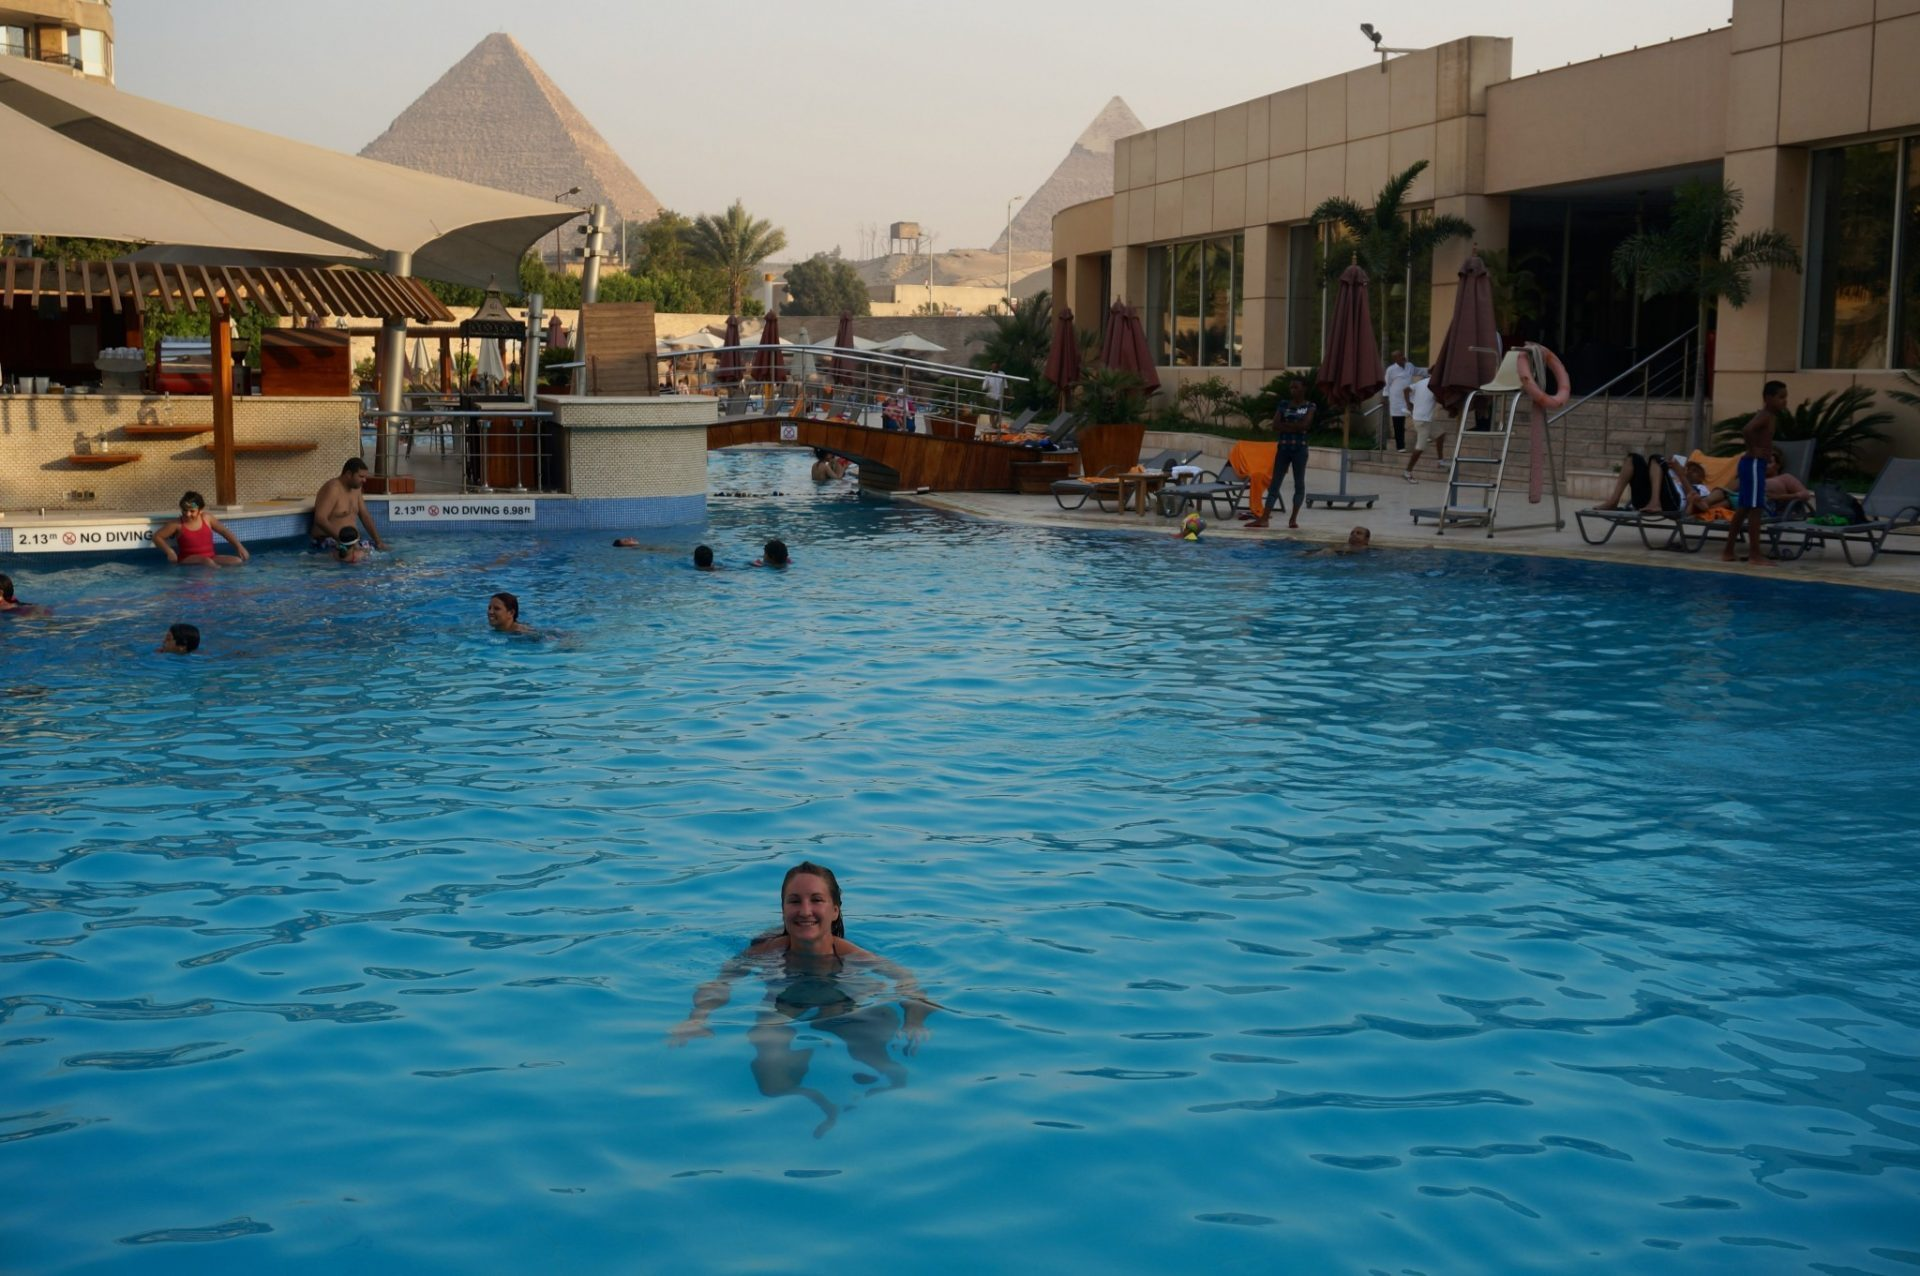 Le Meridian Pyramids Giza pool with Great Pyramids view in the background